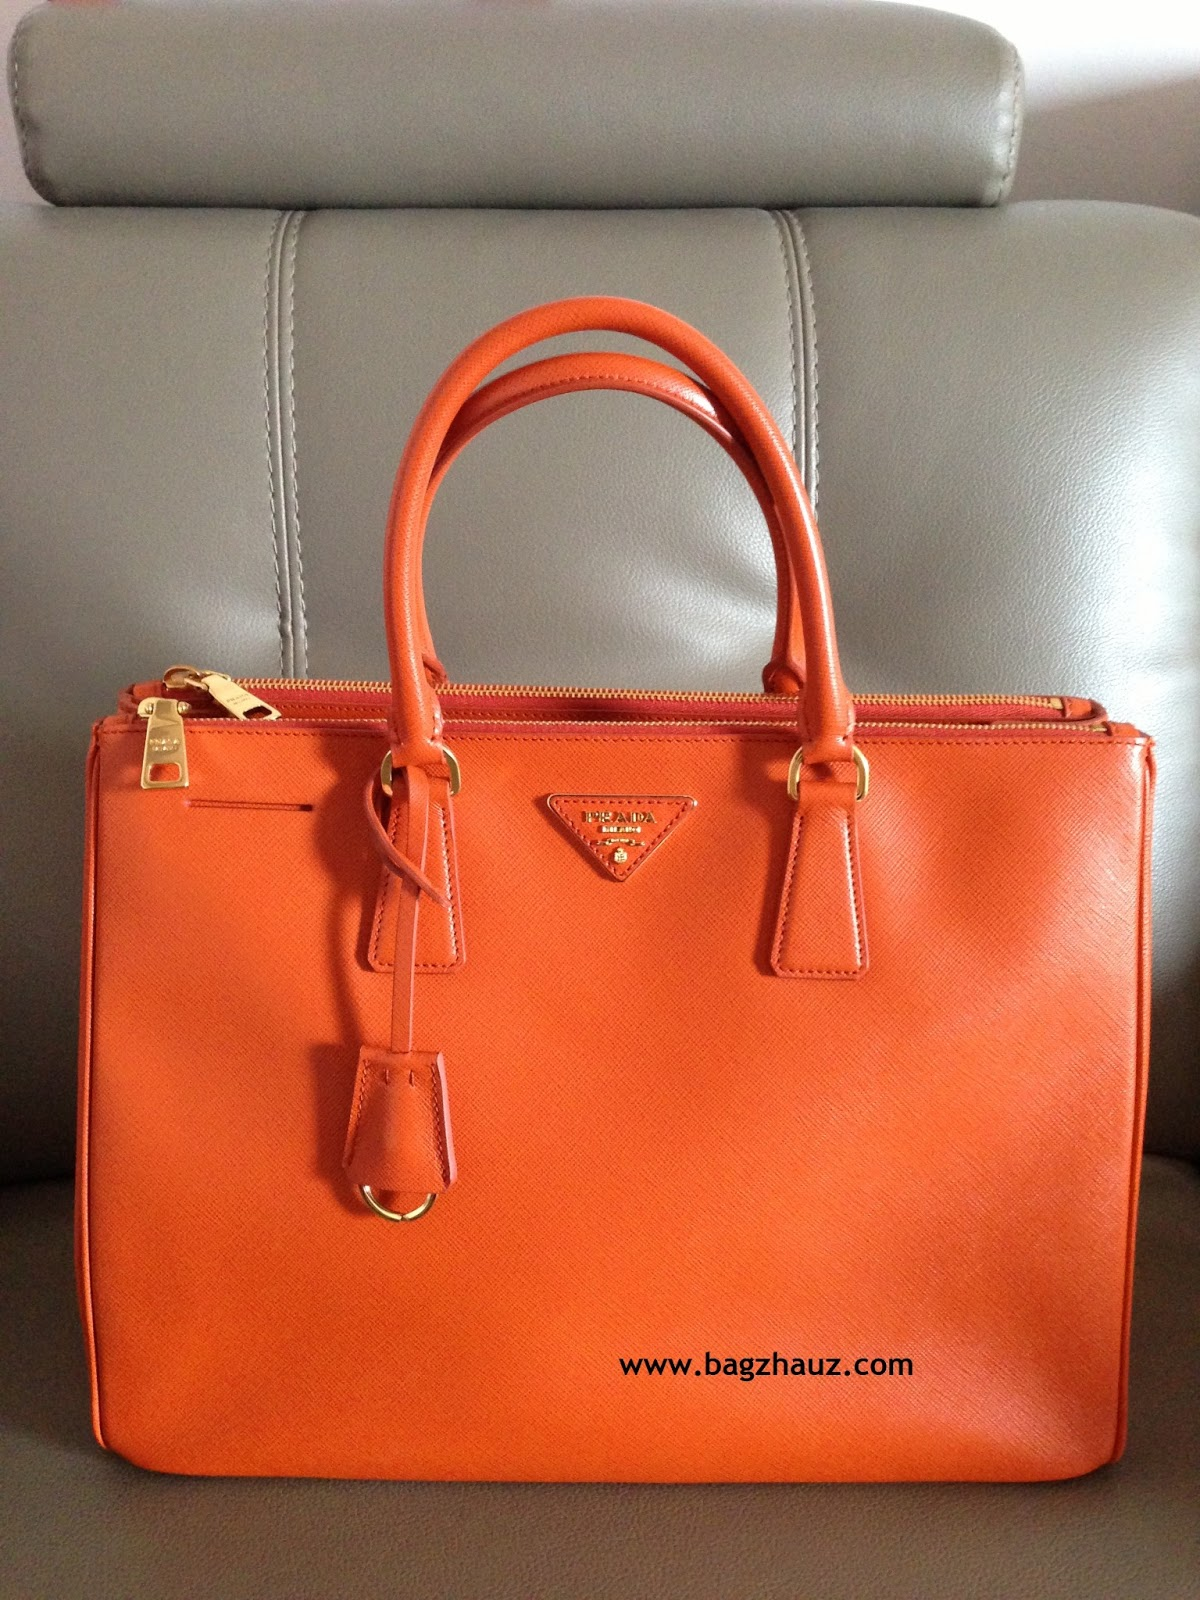 0a9c758b3893 ... ireland sold out prada bn1786 saffiano leather tote in papaya 08c82  0c7c7